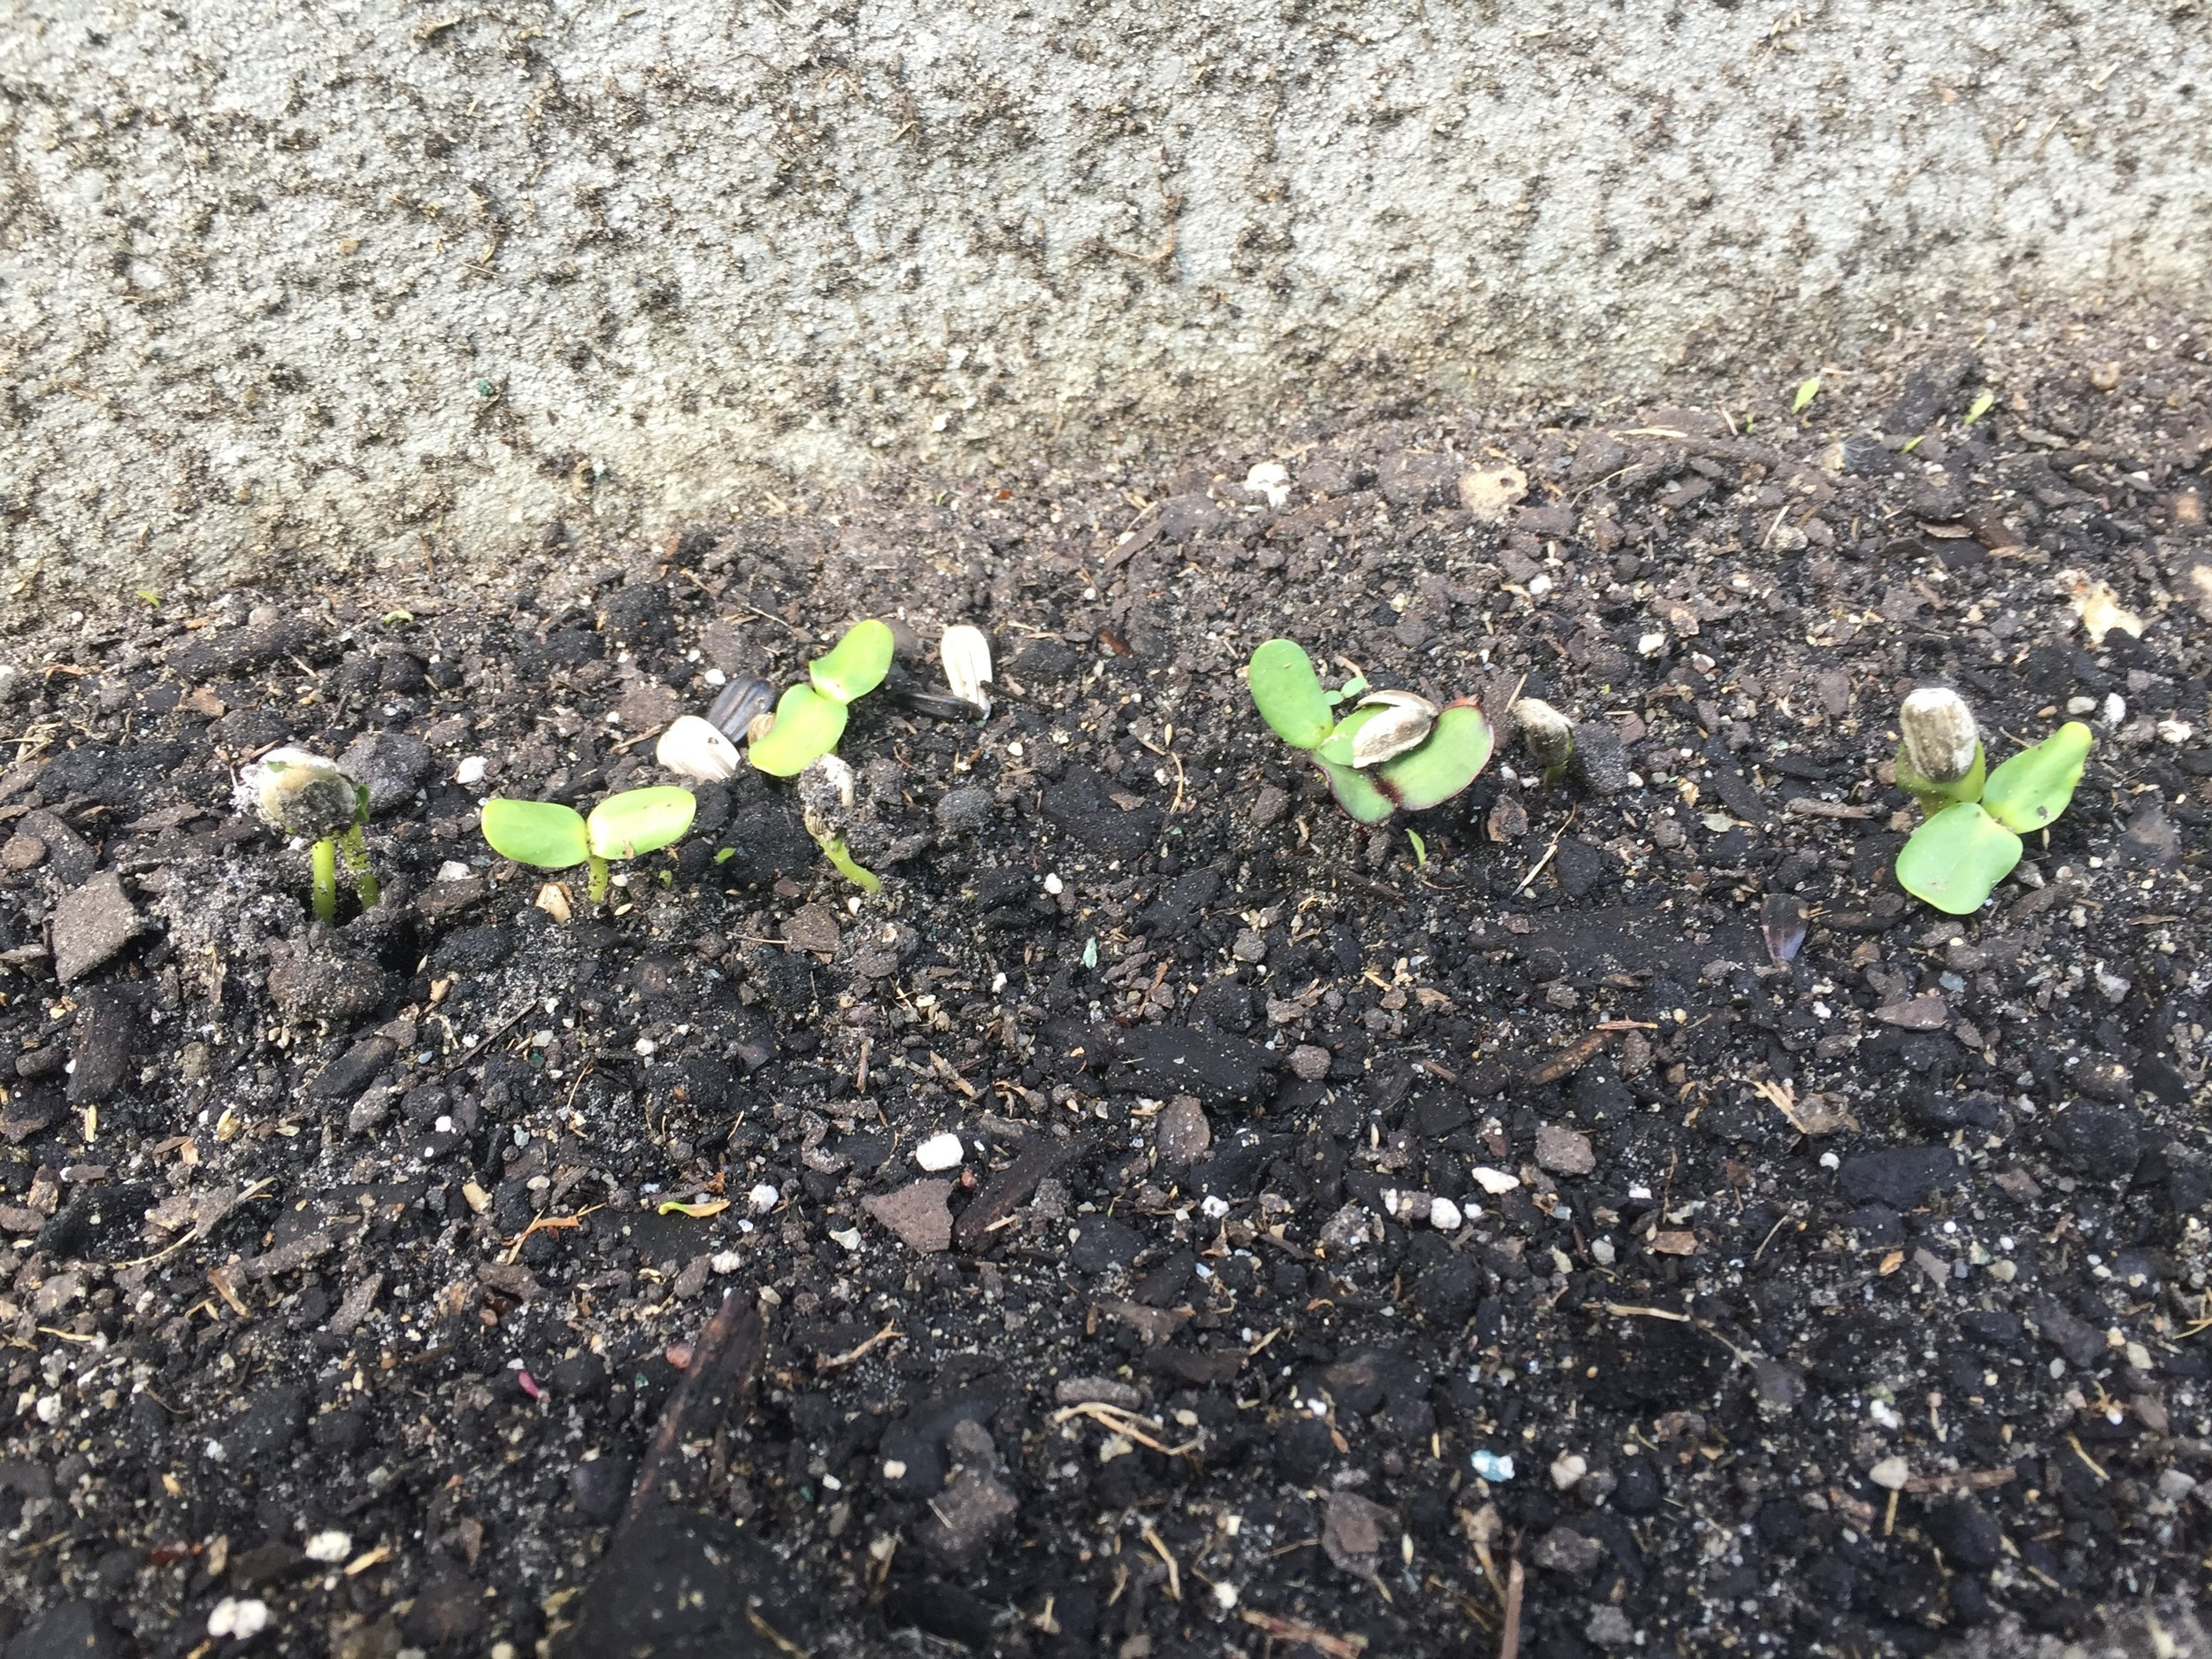 We've heard of the rose which grew from concrete but in her' we're cultivating the sunflowers which gotta grow from cement...  Sprouting! Yeah what!